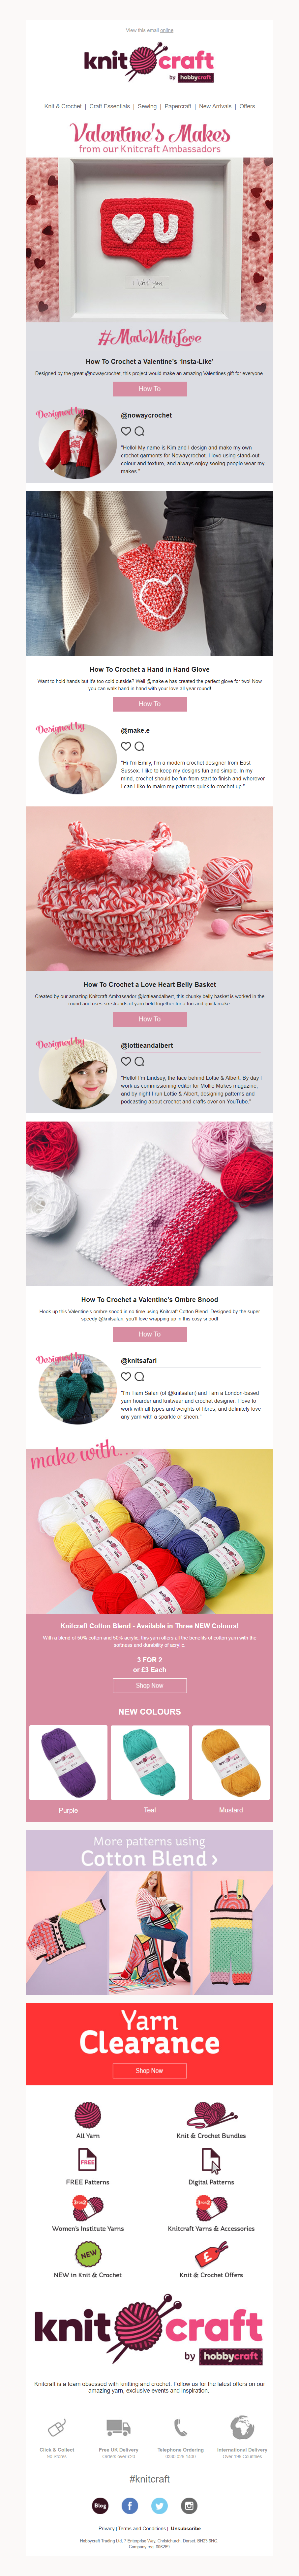 Valentine S Day Email From Hobbycraft With How To Make Gift Guides And Social Media Emailmarketing Email Marketi Craft Supplies Online Crafts Craft Supplies